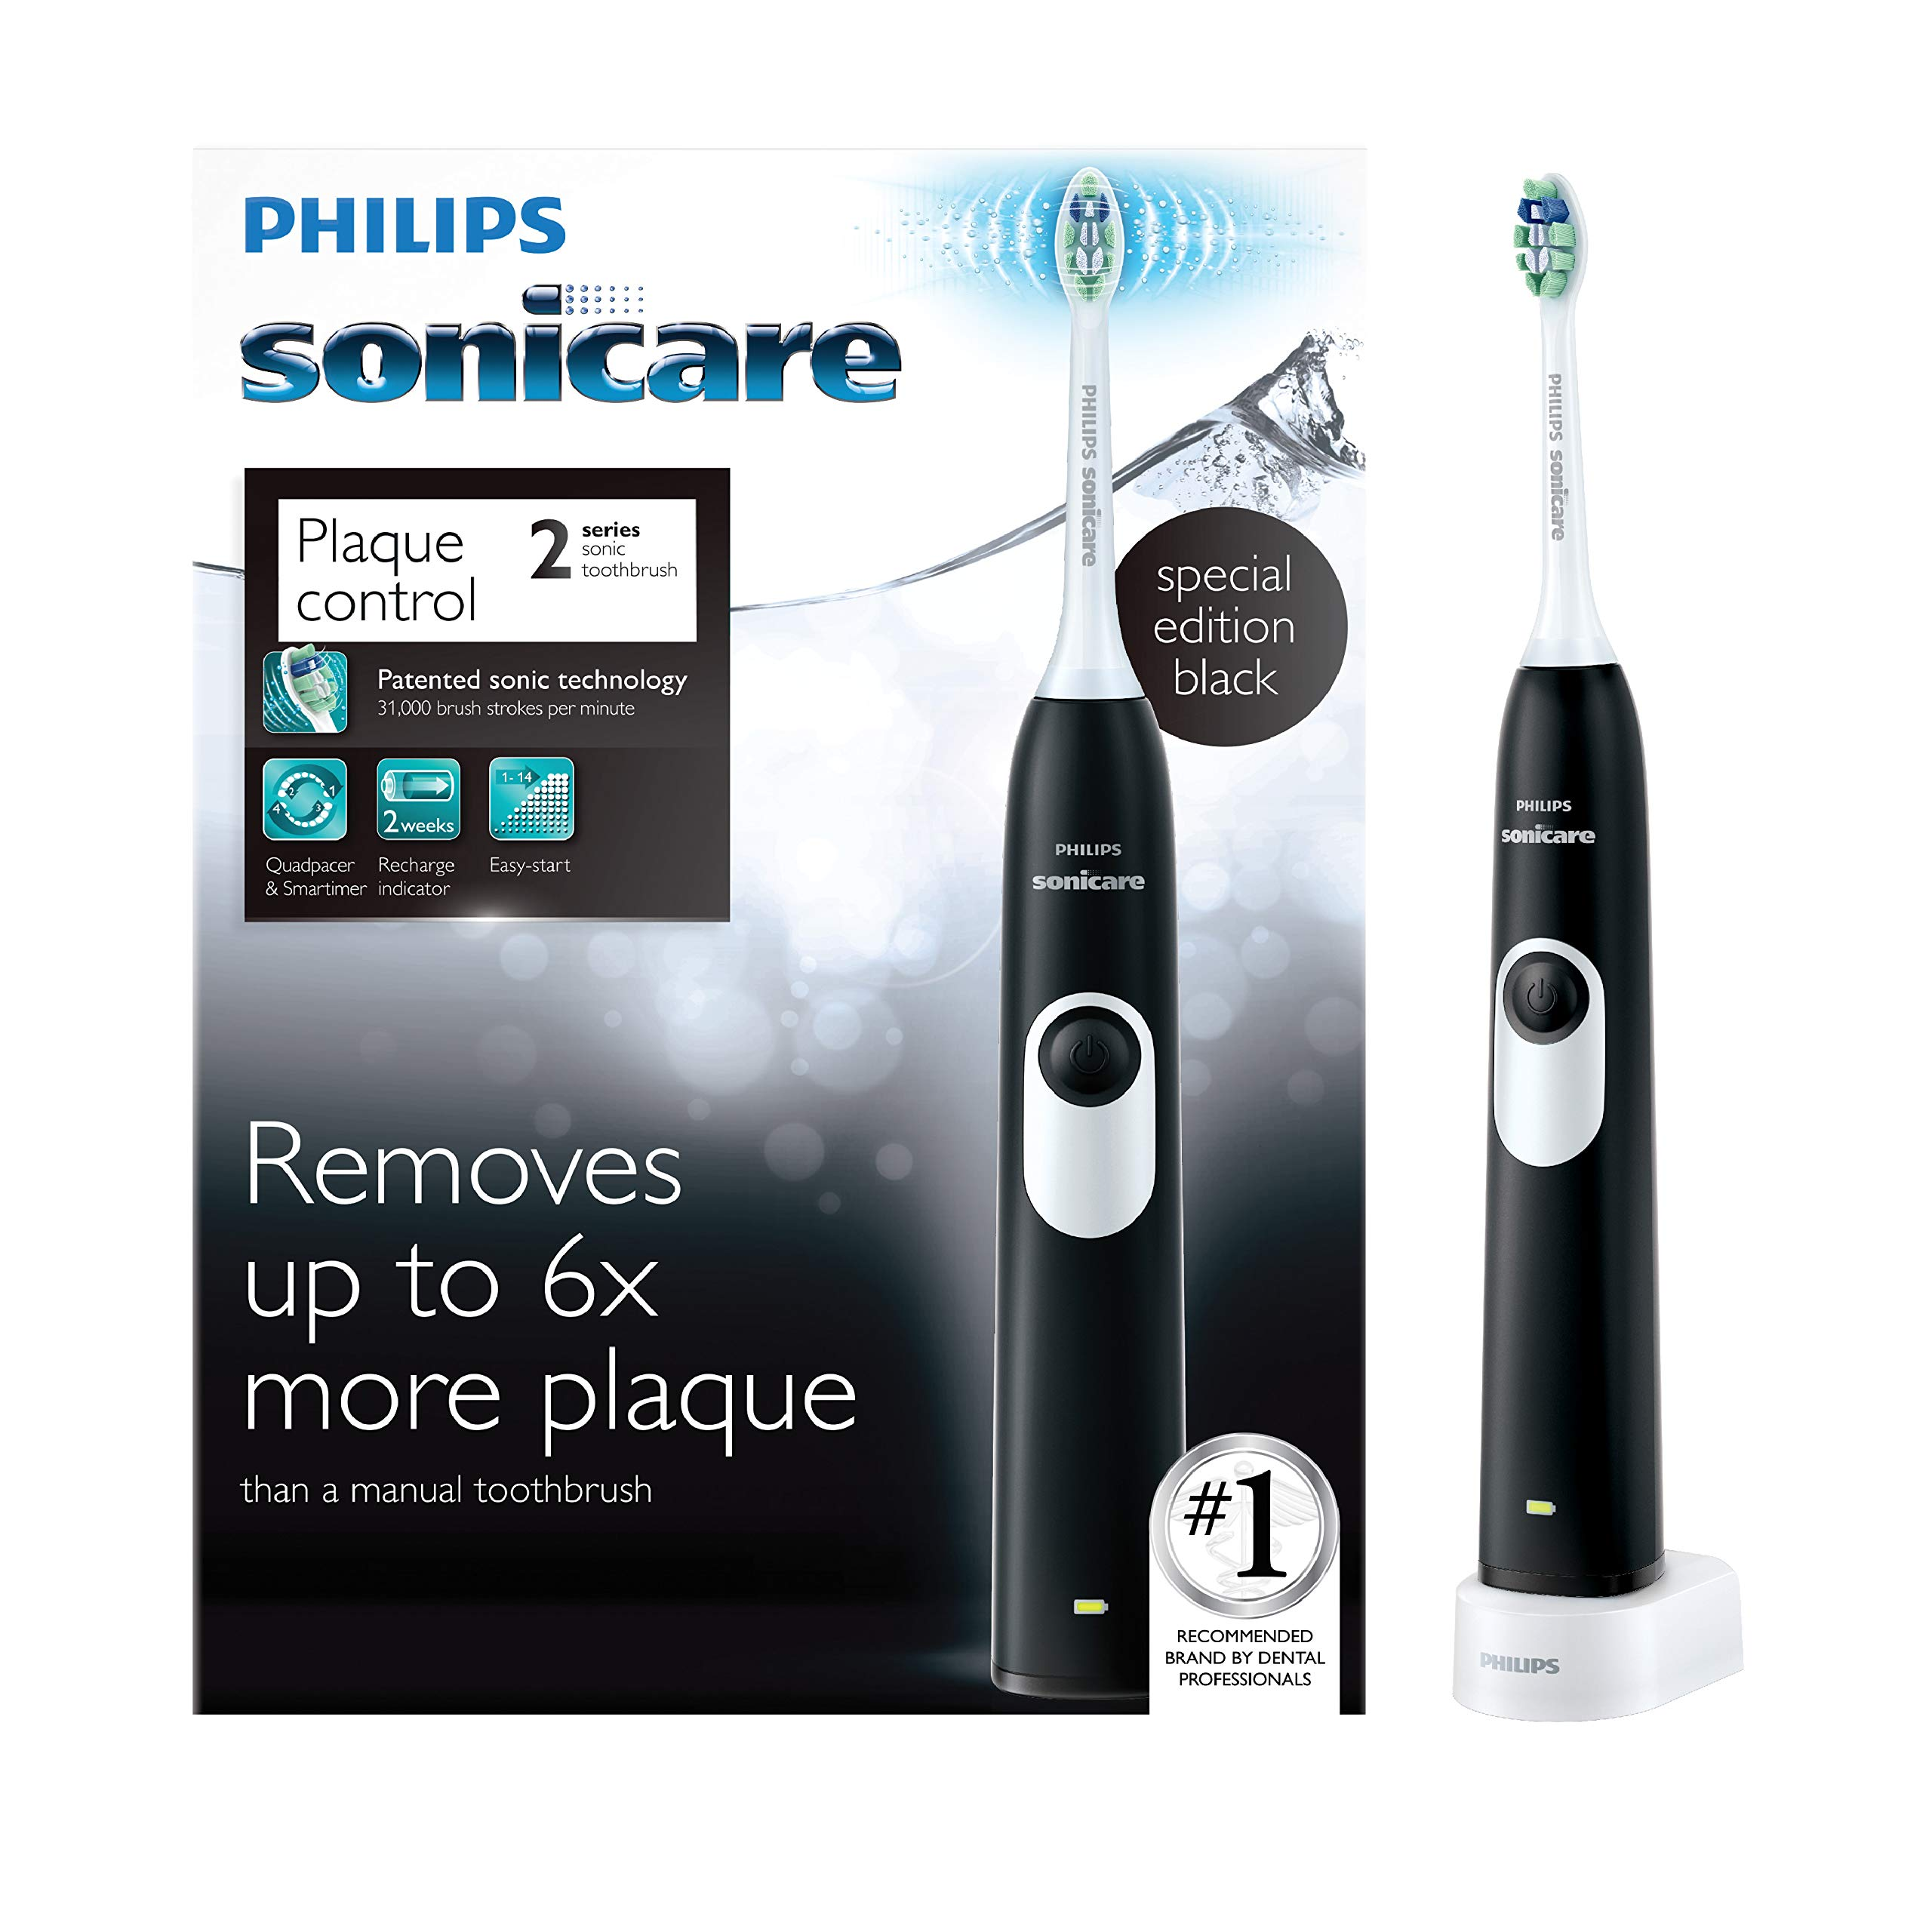 Philips Sonicare 2 Series plaque control rechargeable electric toothbrush, Black, HX6211 by Philips Sonicare